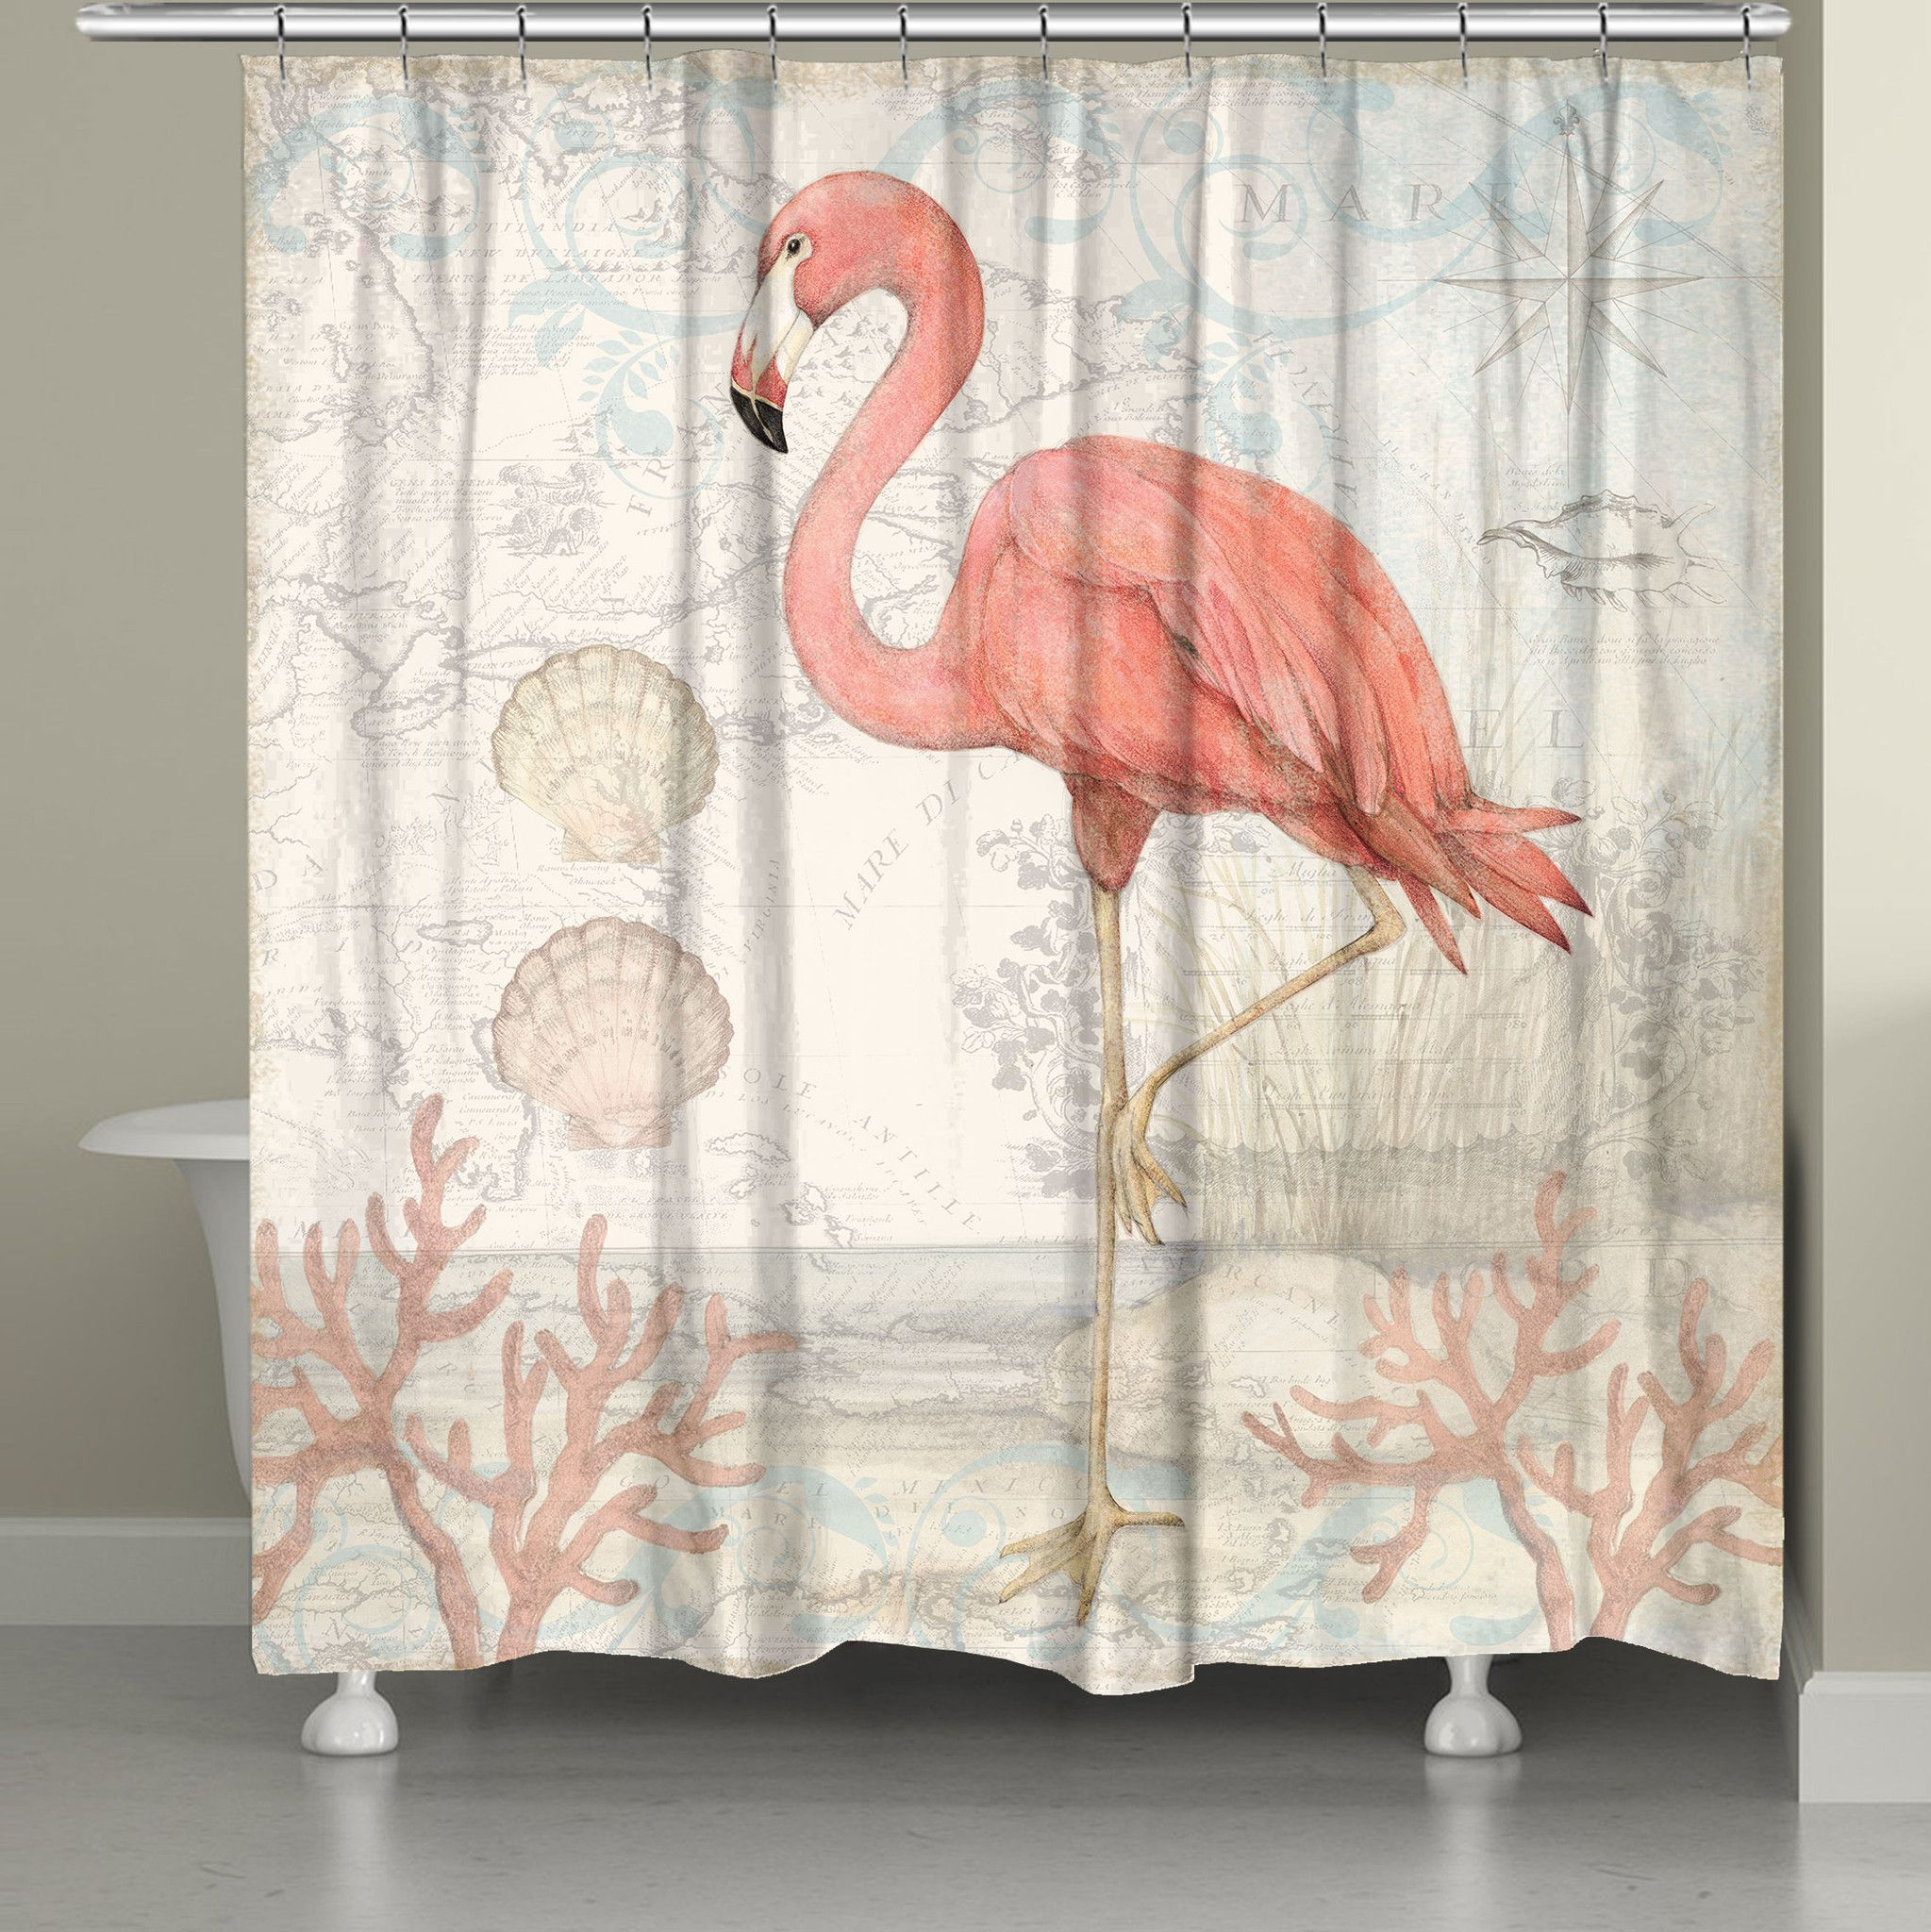 elegant paris new kids of i nice coolest saunaheinola french love curtain shower ideas inspiration themed mainstays bathroom vibrant walmart awesome curtains